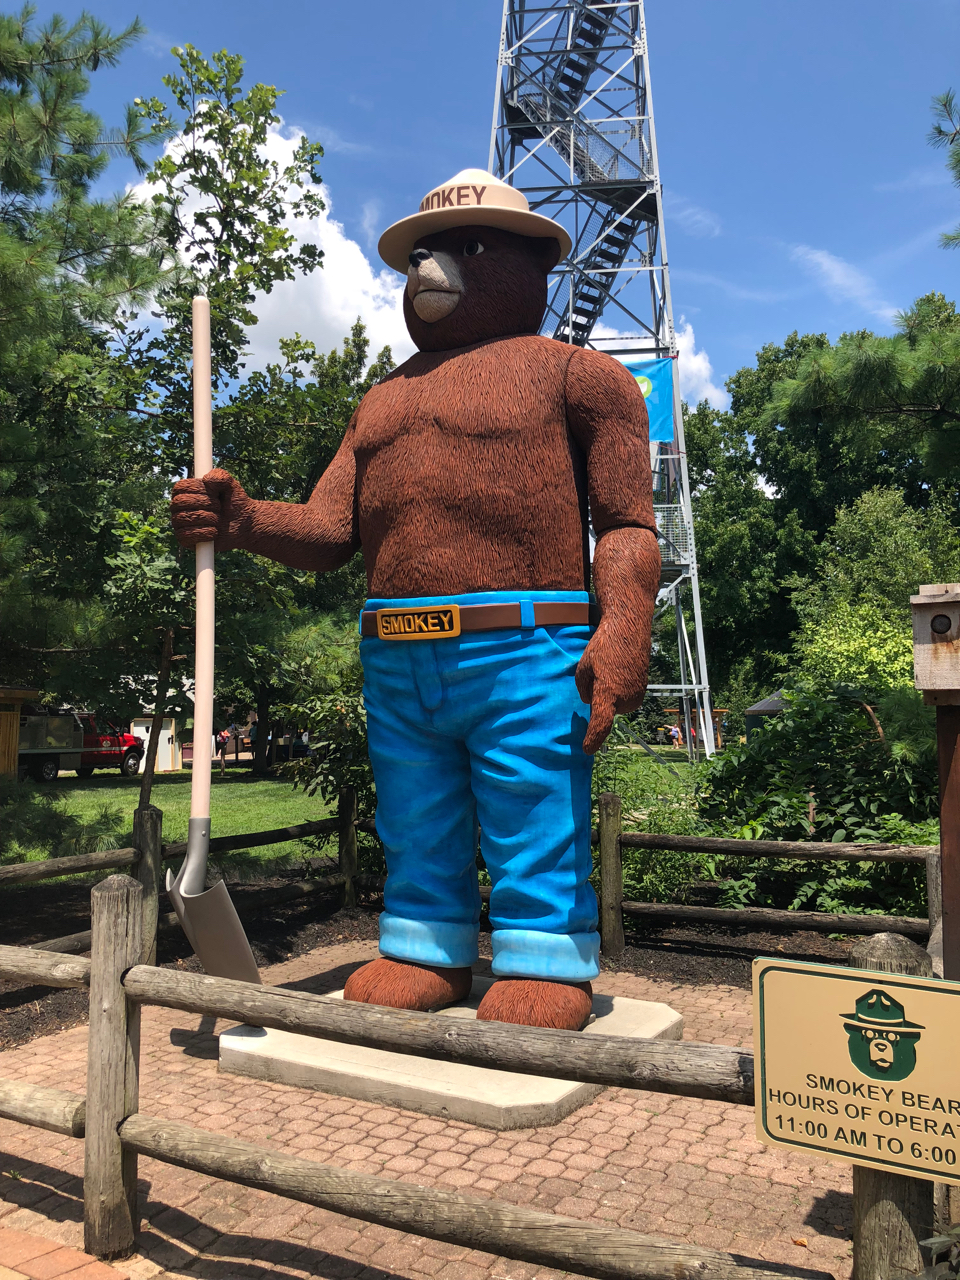 Smokey Bear at Ohio State Fair